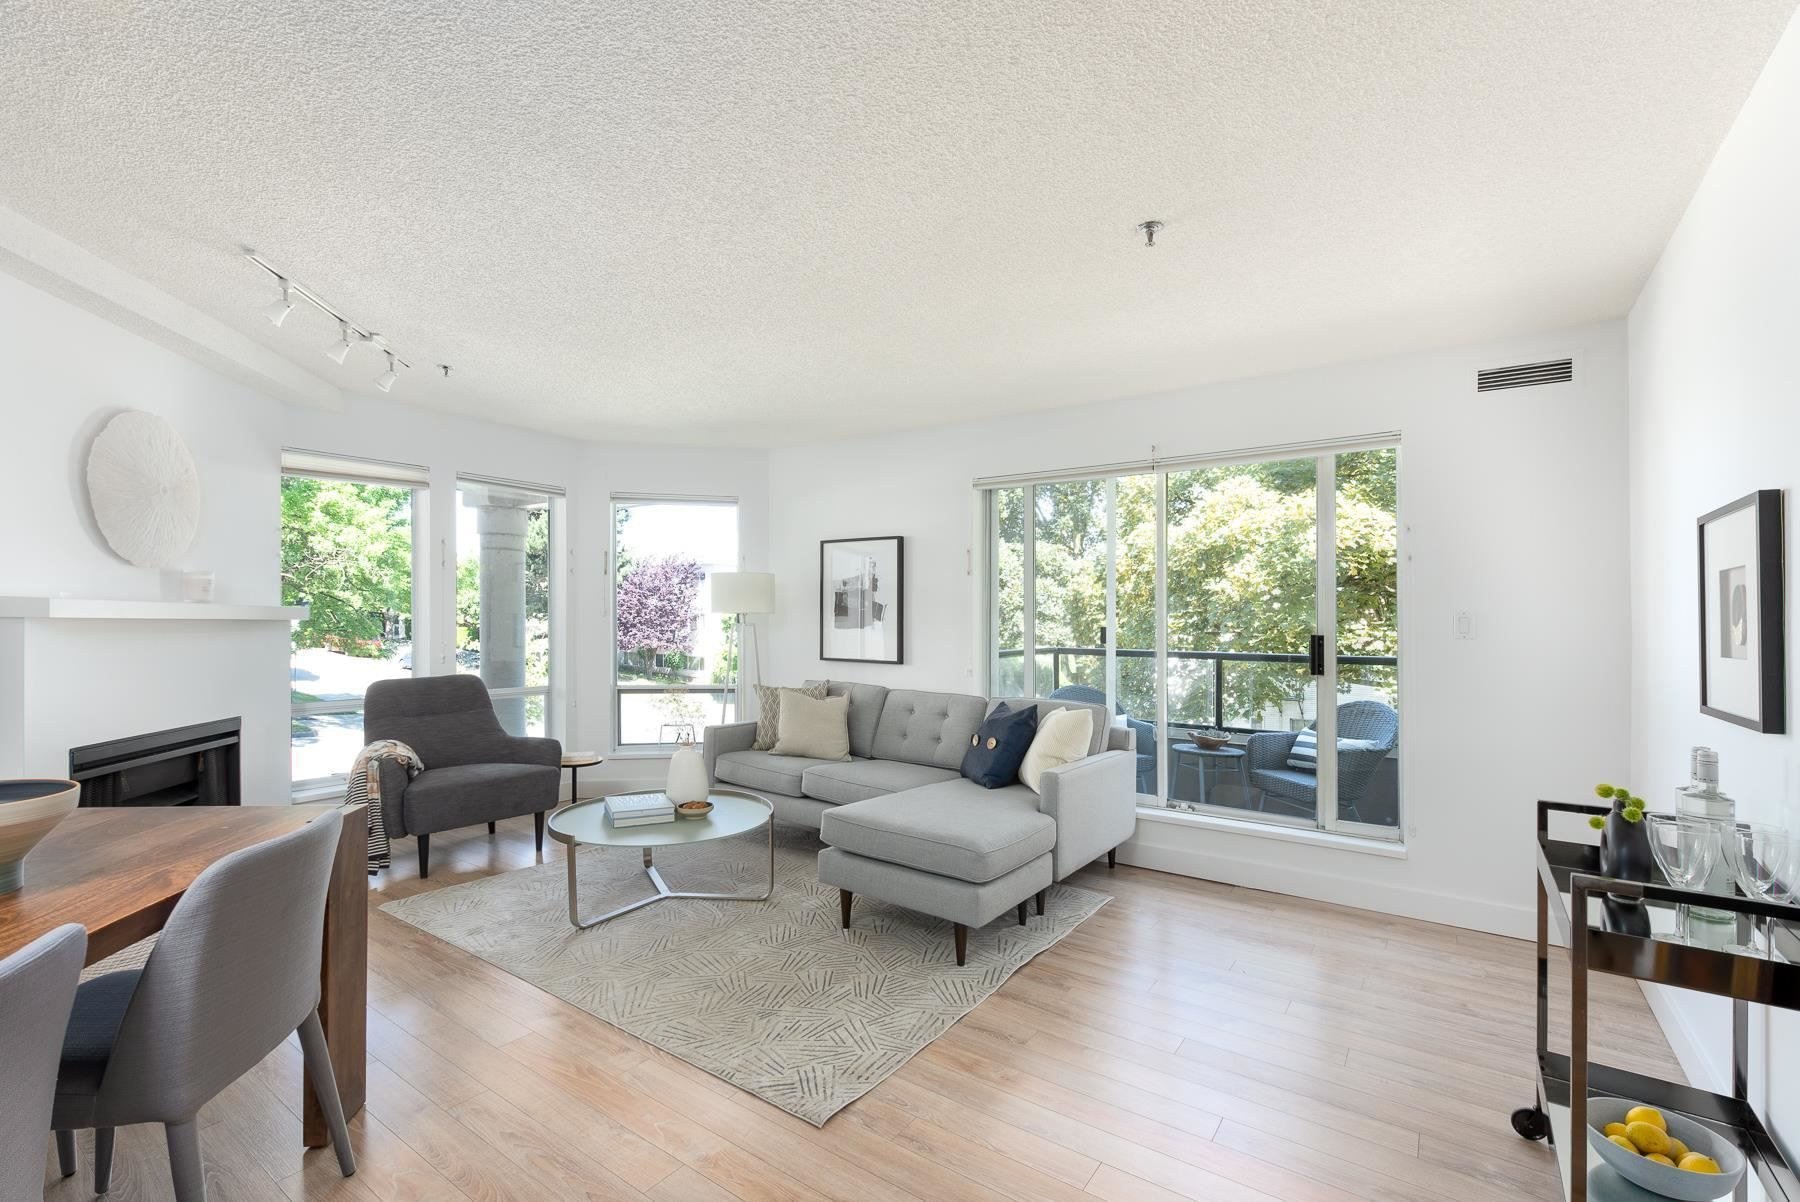 """Main Photo: 206 1988 MAPLE Street in Vancouver: Kitsilano Condo for sale in """"The Maples"""" (Vancouver West)  : MLS®# R2597512"""